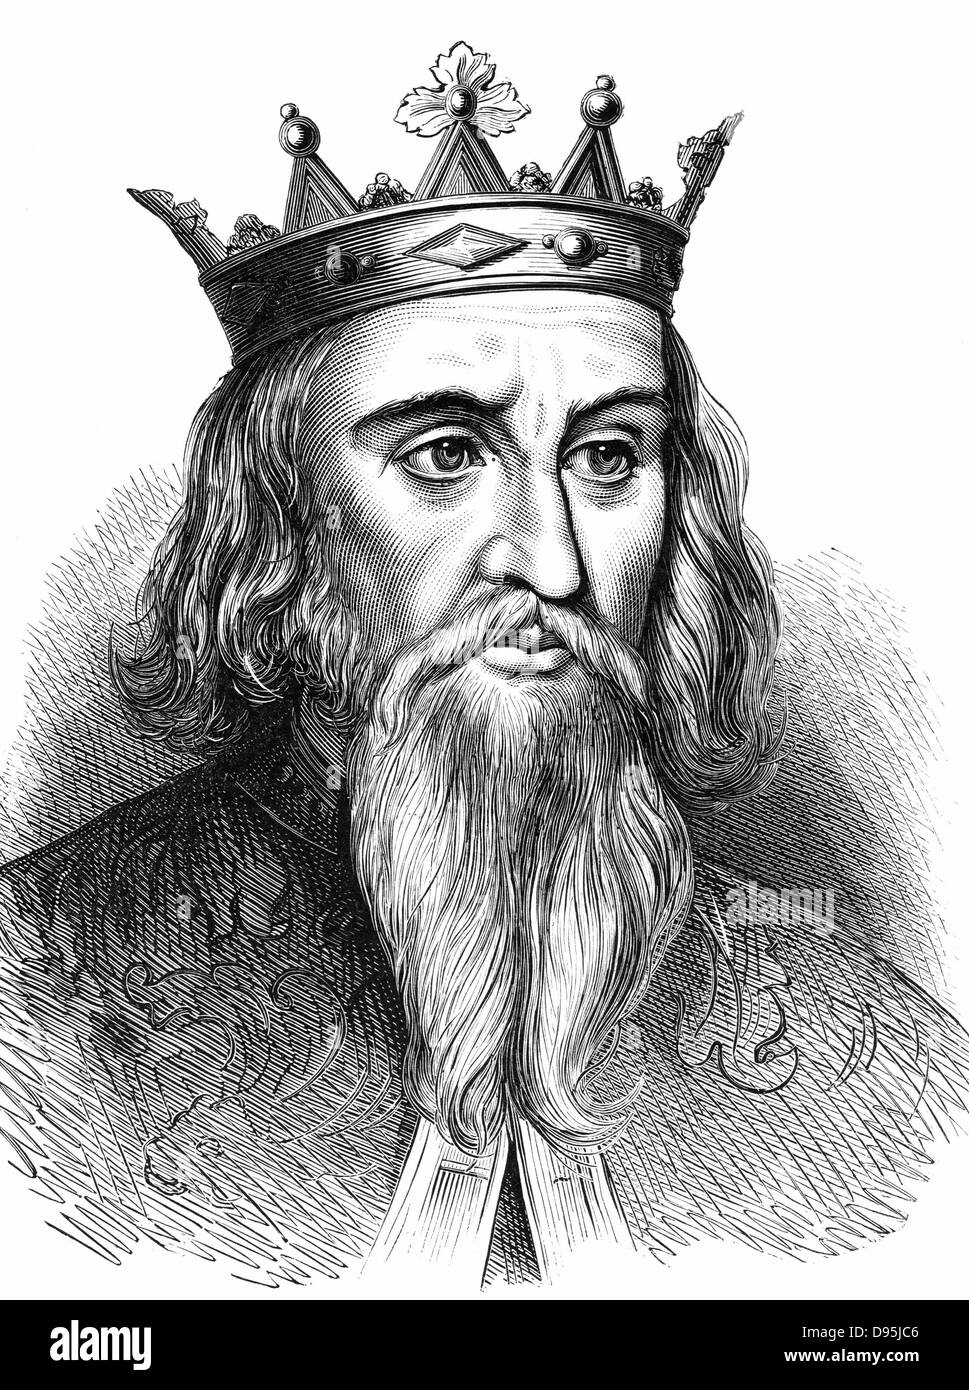 Henry I (1068-1135) king of England from 1100; youngest son of William I, the Conqueror. Wood engraving c1900 - Stock Image